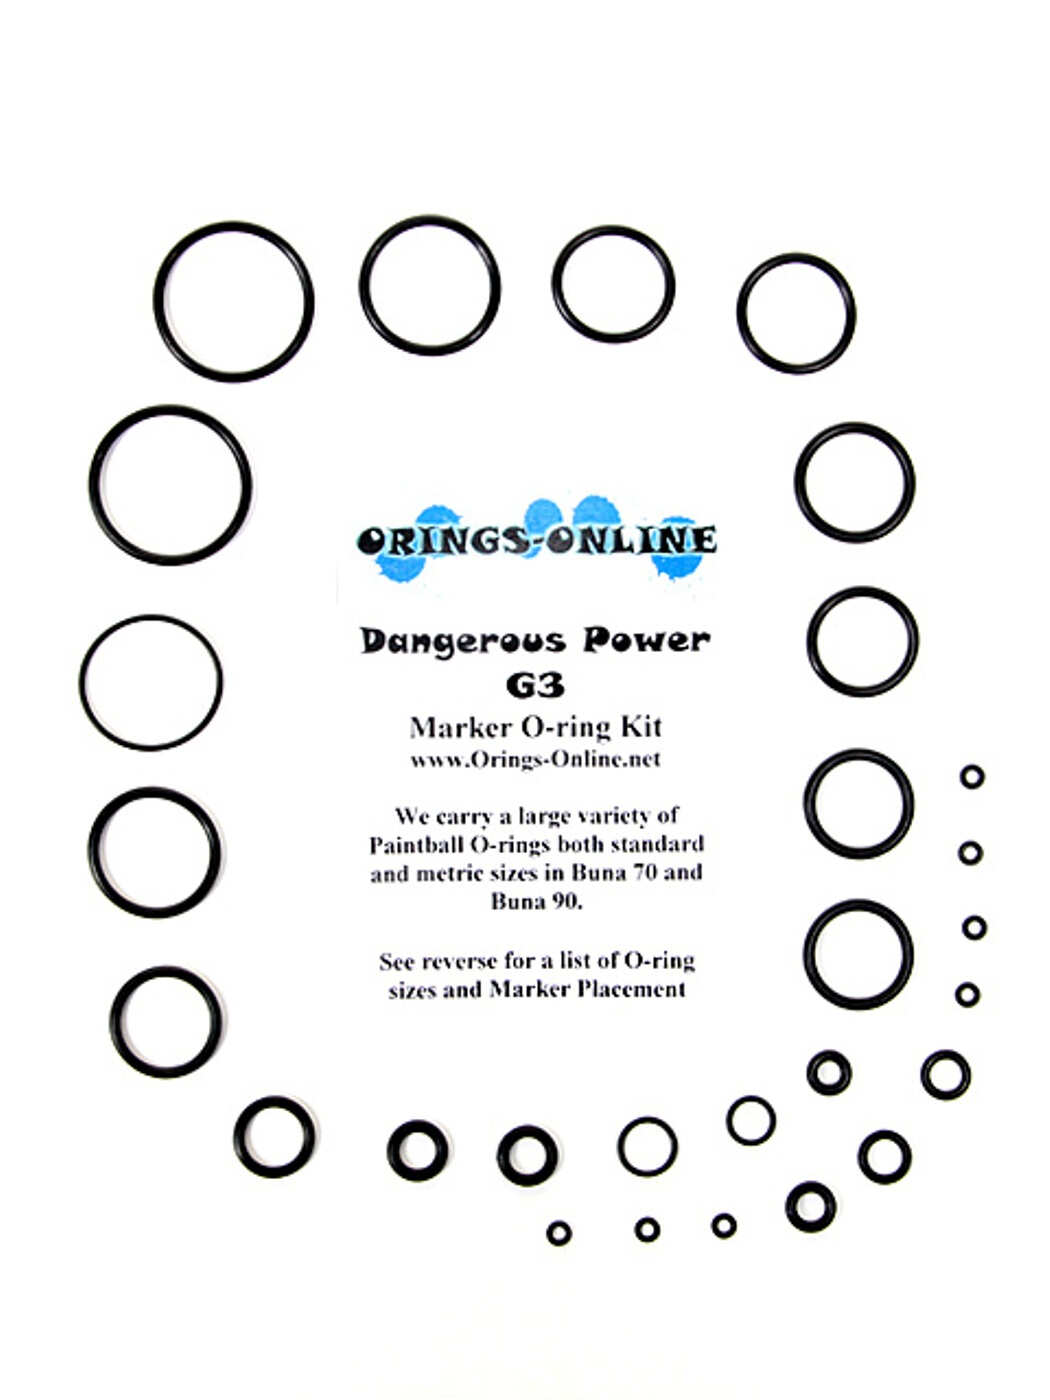 Dangerous Power - G3 Marker O-ring Kit